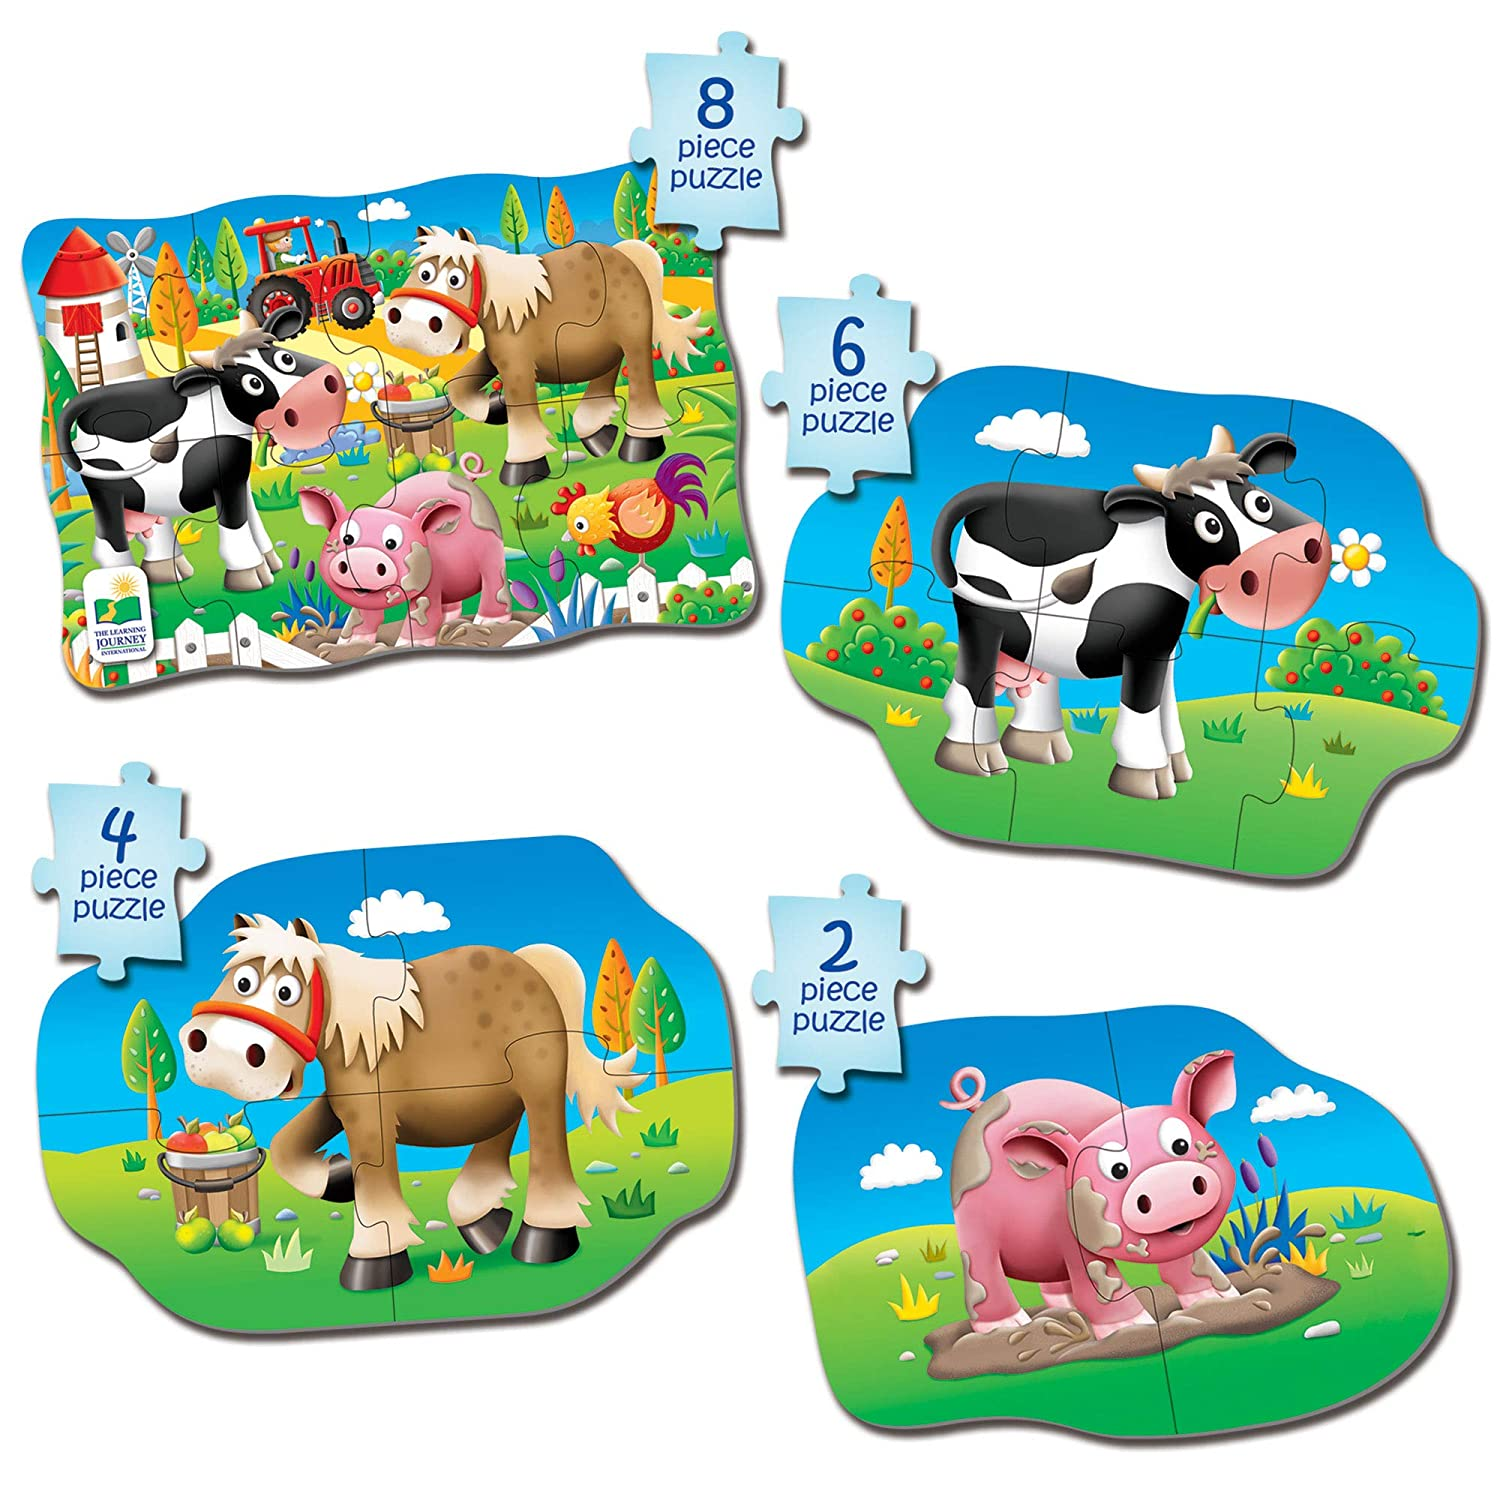 The Learning Journey My First 4-In-A-Box Puzzle - Farm - Educational Toddler Toys & Gifts for Boys & Girls Ages 2 & Up - Award Winning Puzzle